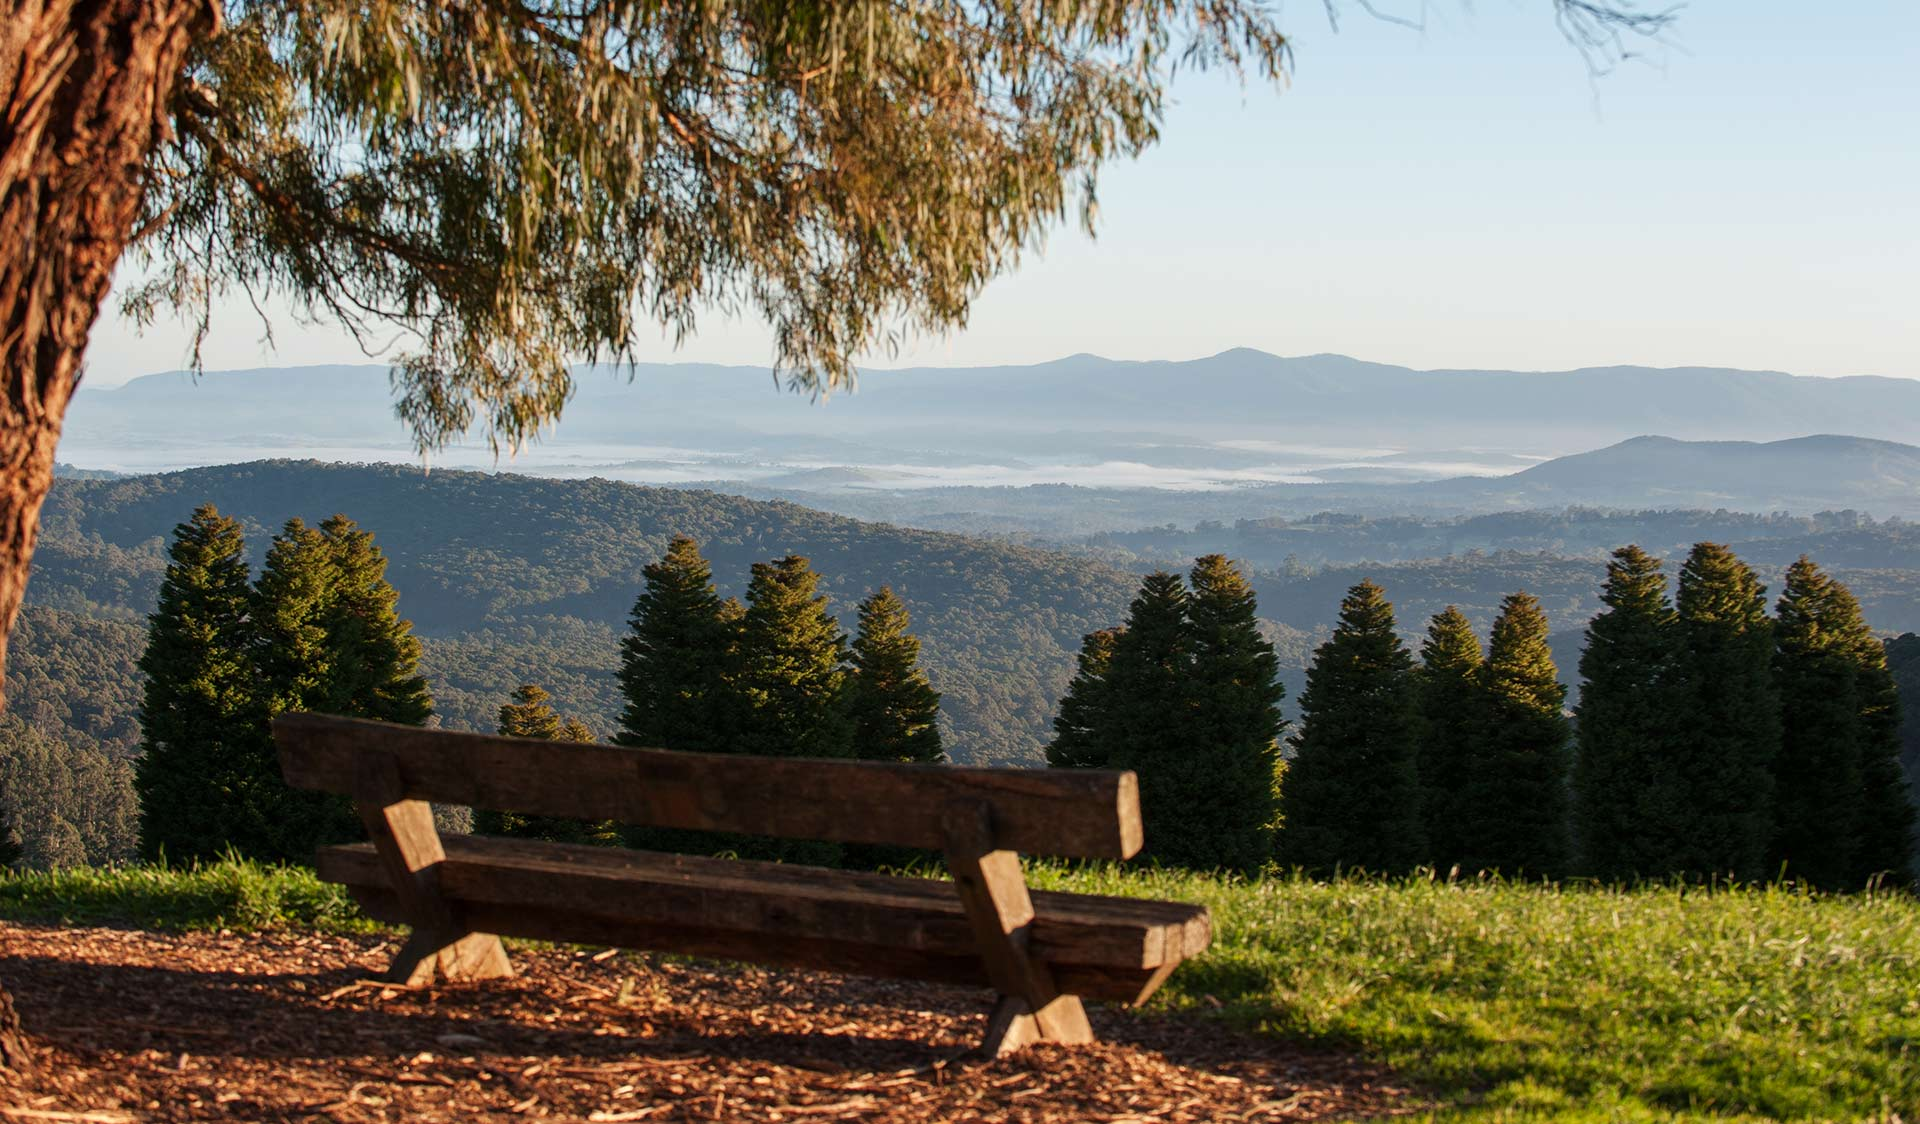 The view from the RJ Hamer Arboretum in the Dandenong Ranges National Park.